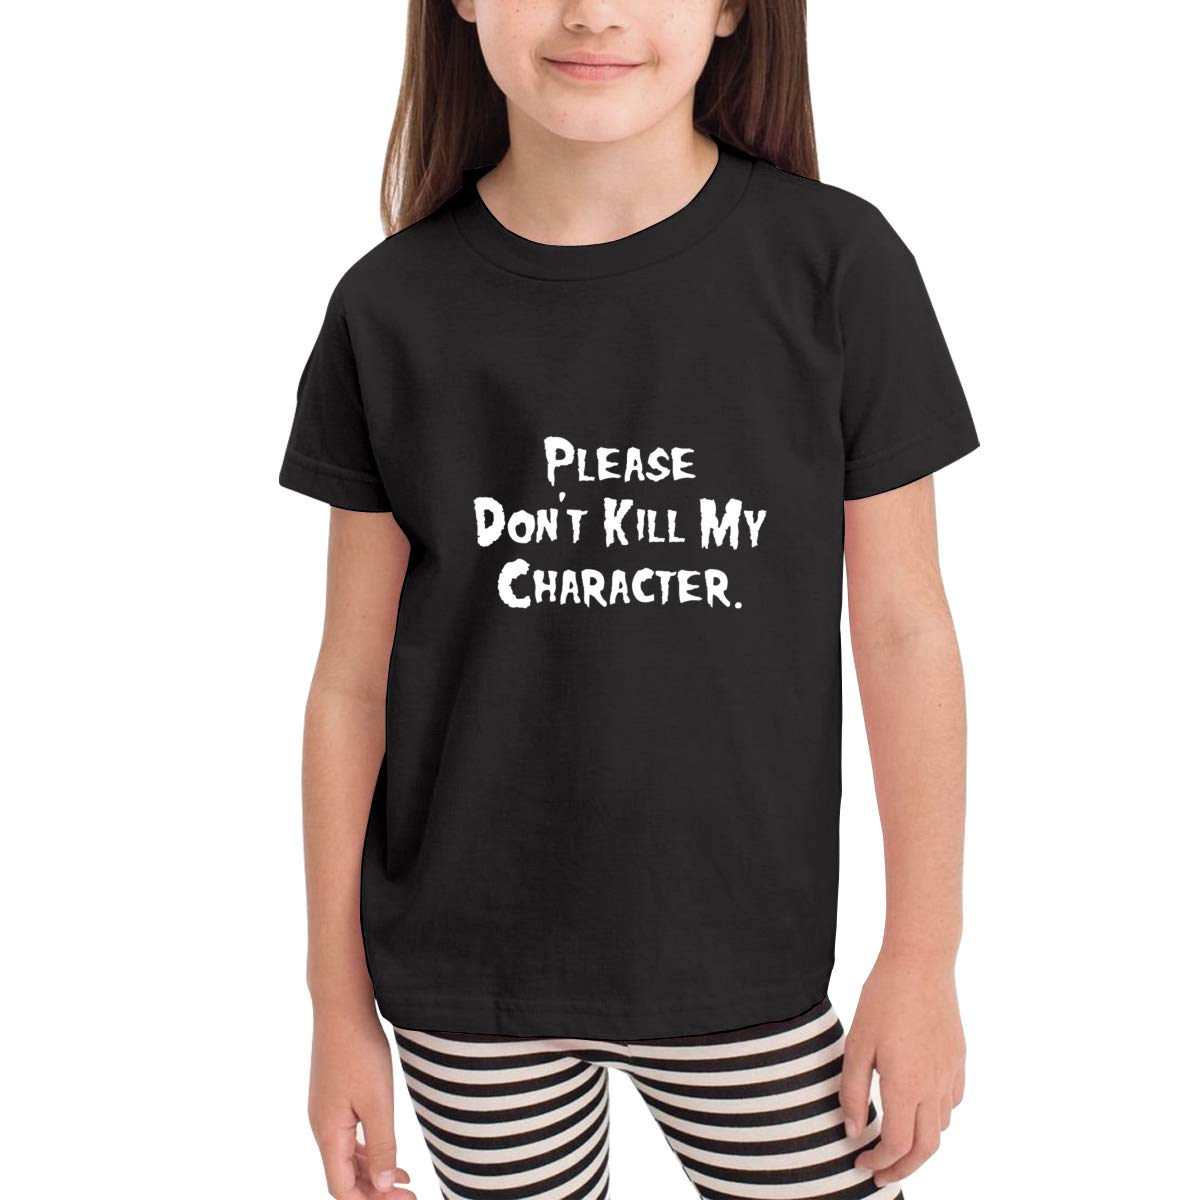 Onlybabycare Dont Kill My Character 100/% Cotton Toddler Baby Boys Girls Kids Short Sleeve T Shirt Top Tee Clothes 2-6 T